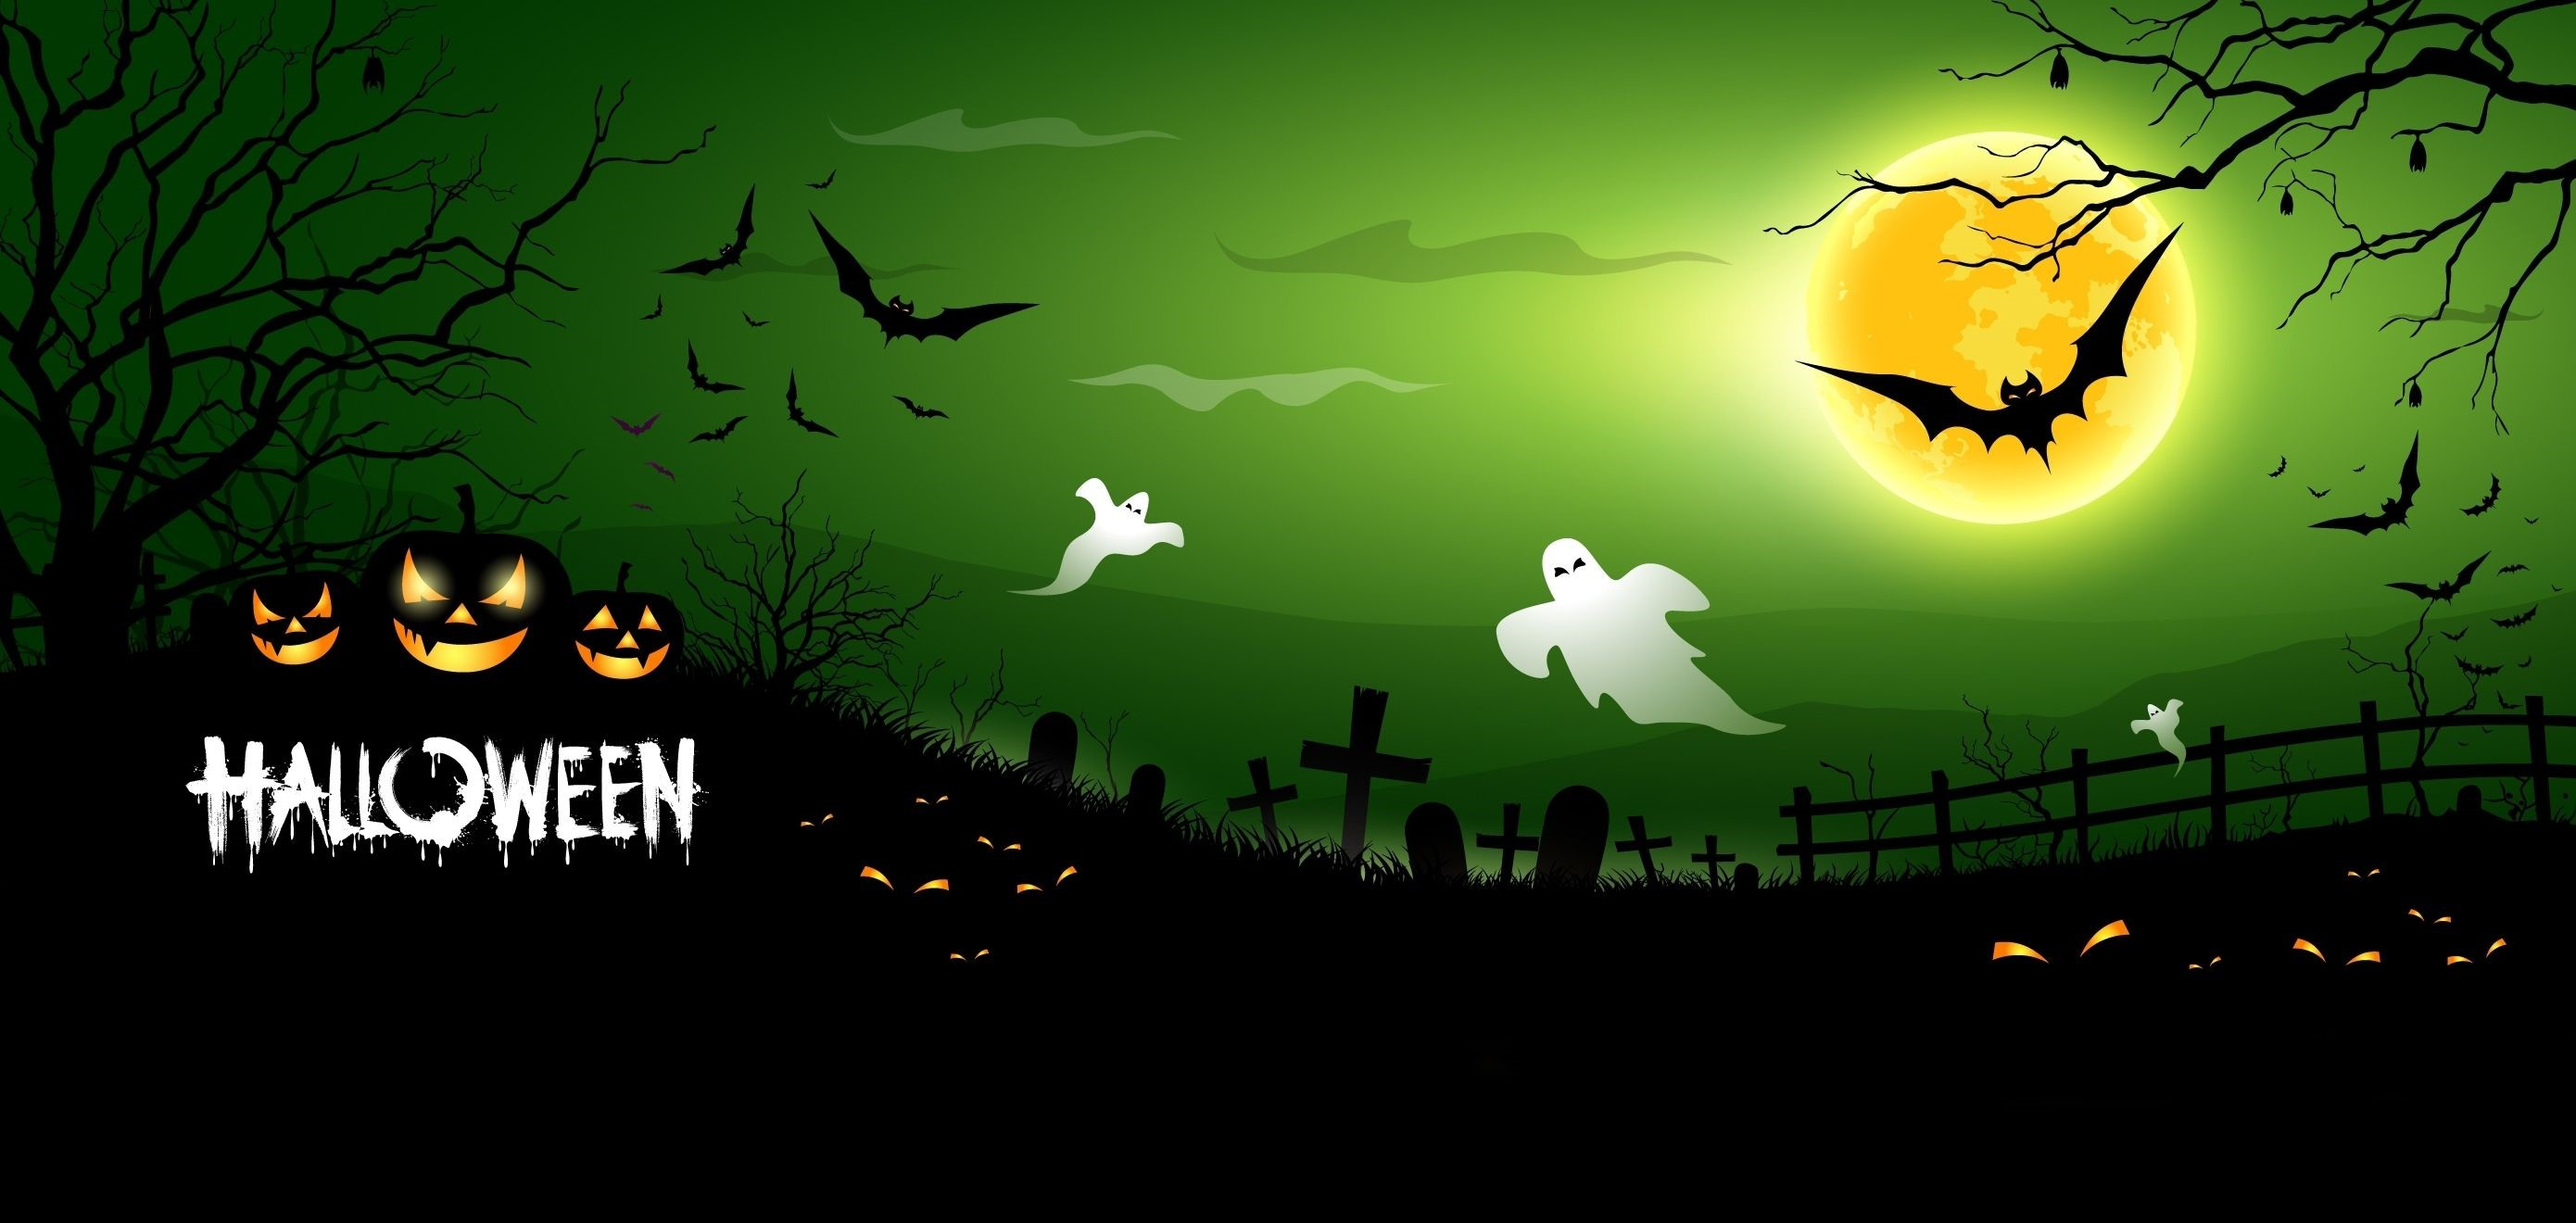 Halloween Cover Photo Wallpaper